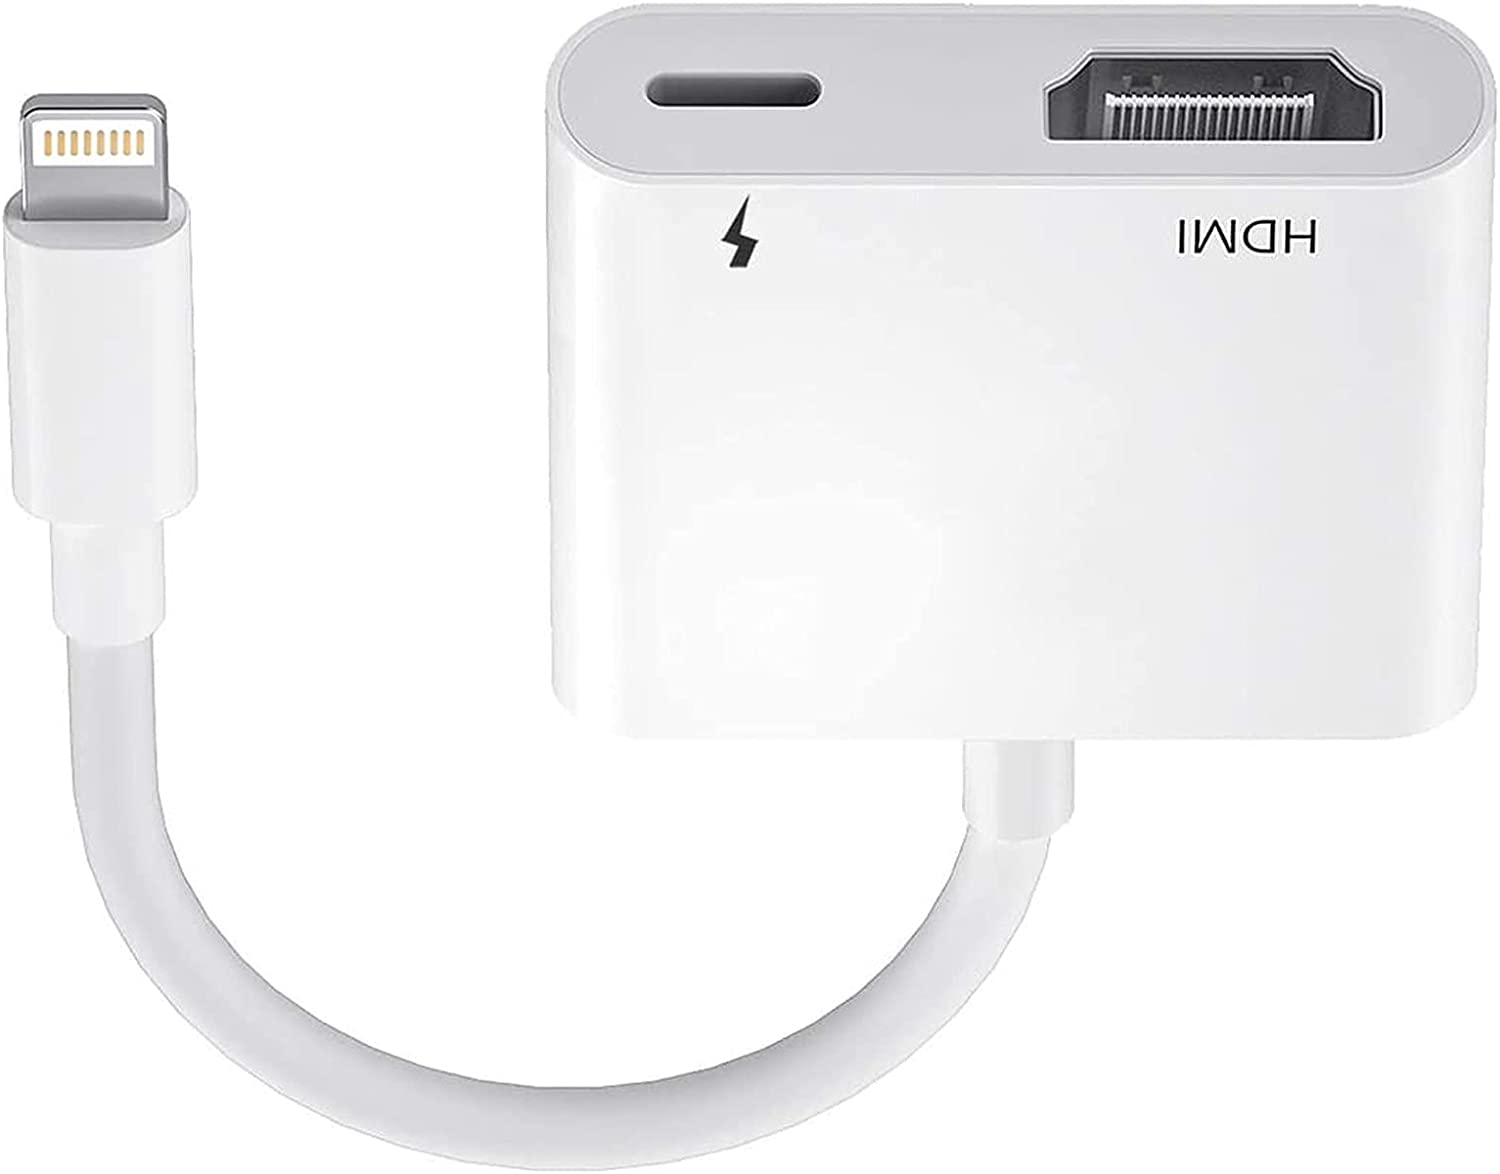 [Apple MFi Certified] HDMI to Lightning Digital AV Adapter,1080P Lightning to HDMI Video & Audio Sync Screen Converter with Charging Port for iPhone iPad to HD TV/Projector/Monitor Support All iOS